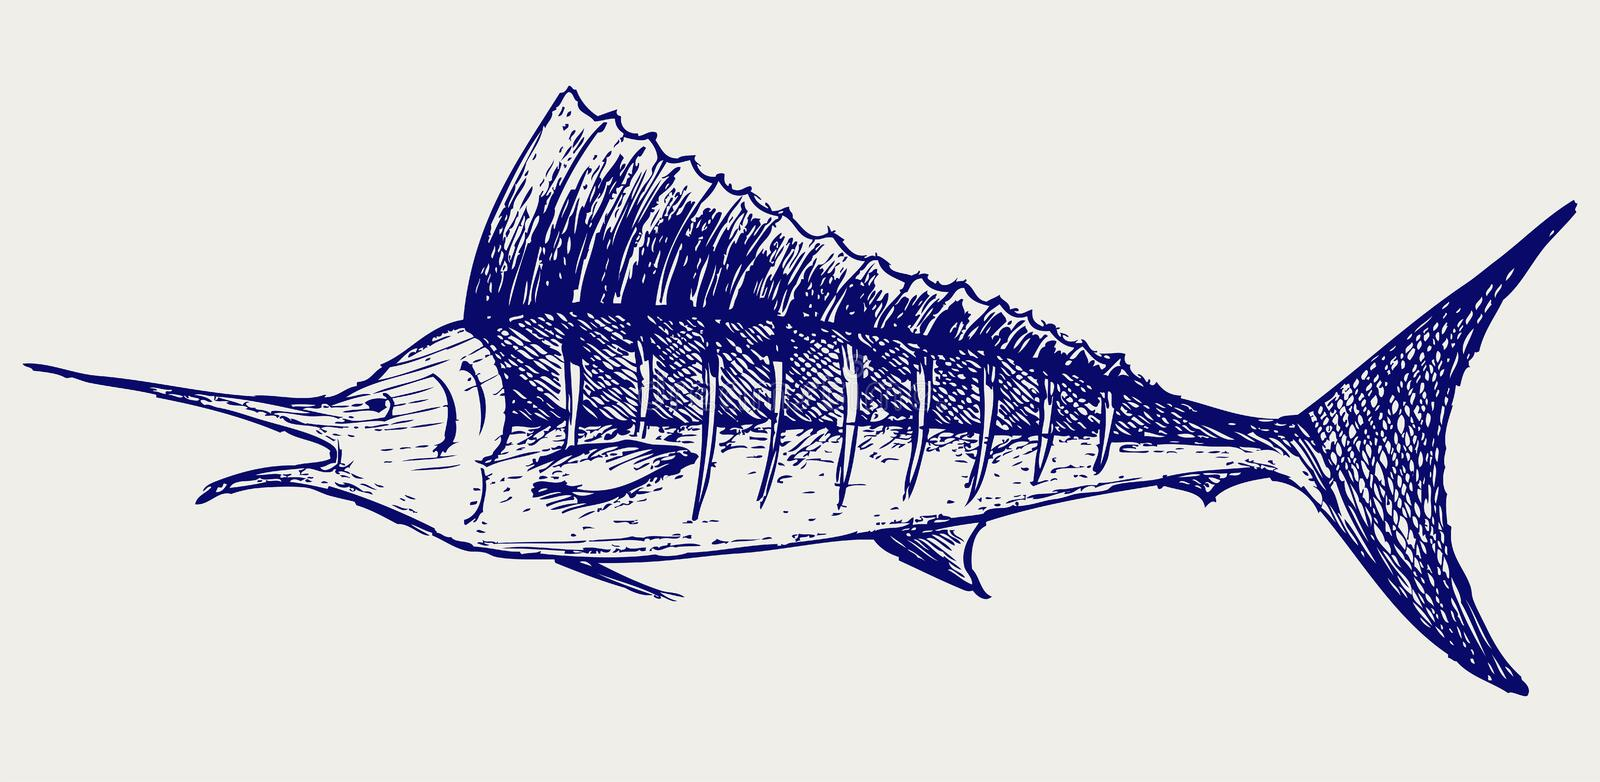 Sailfishsaltwaterfisk stock illustrationer